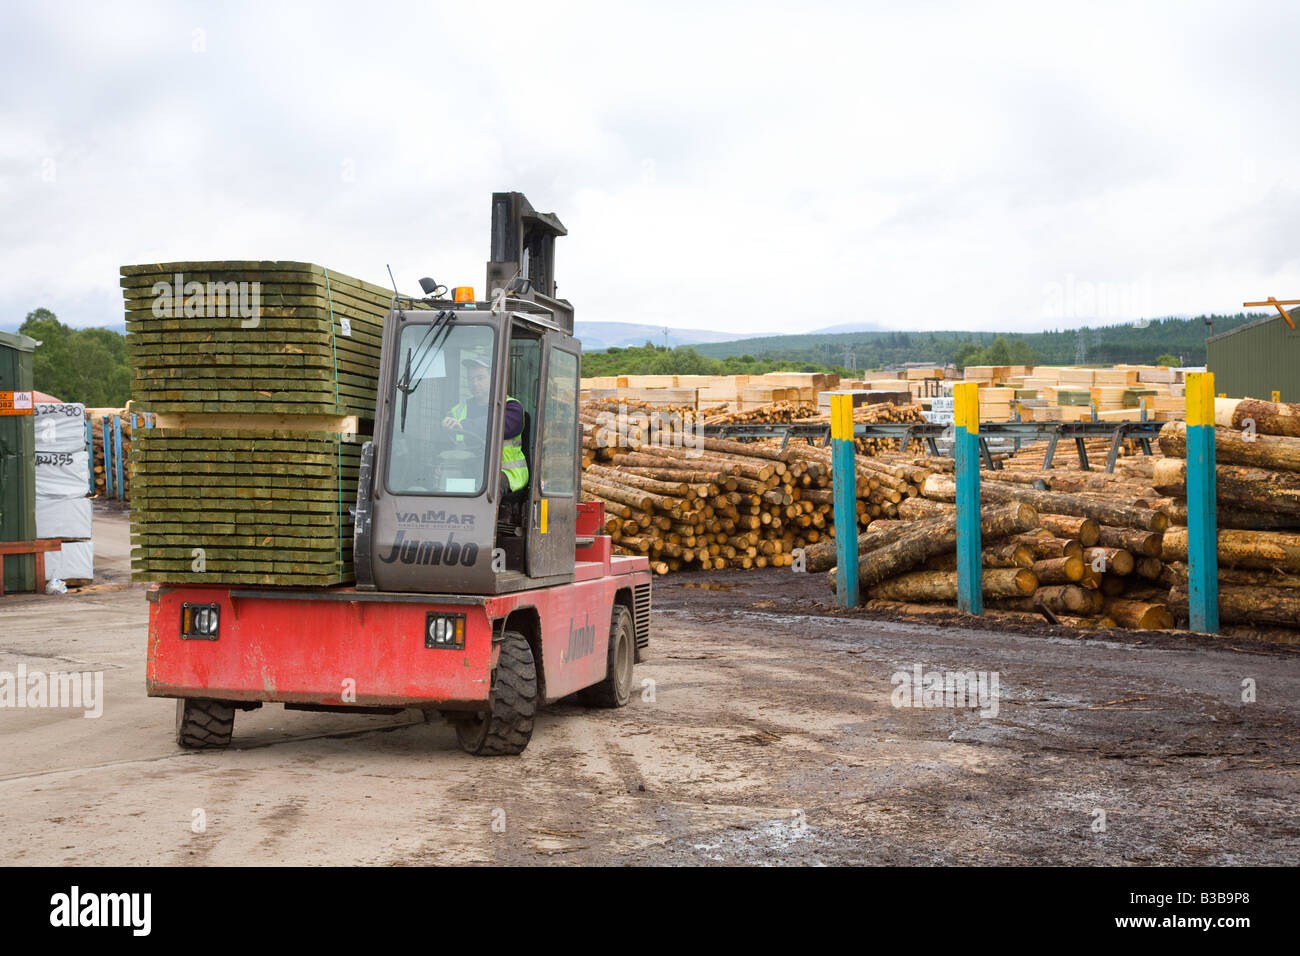 Valmar sideloader being used at BSW Timber, Scotland, UK - Stock Image